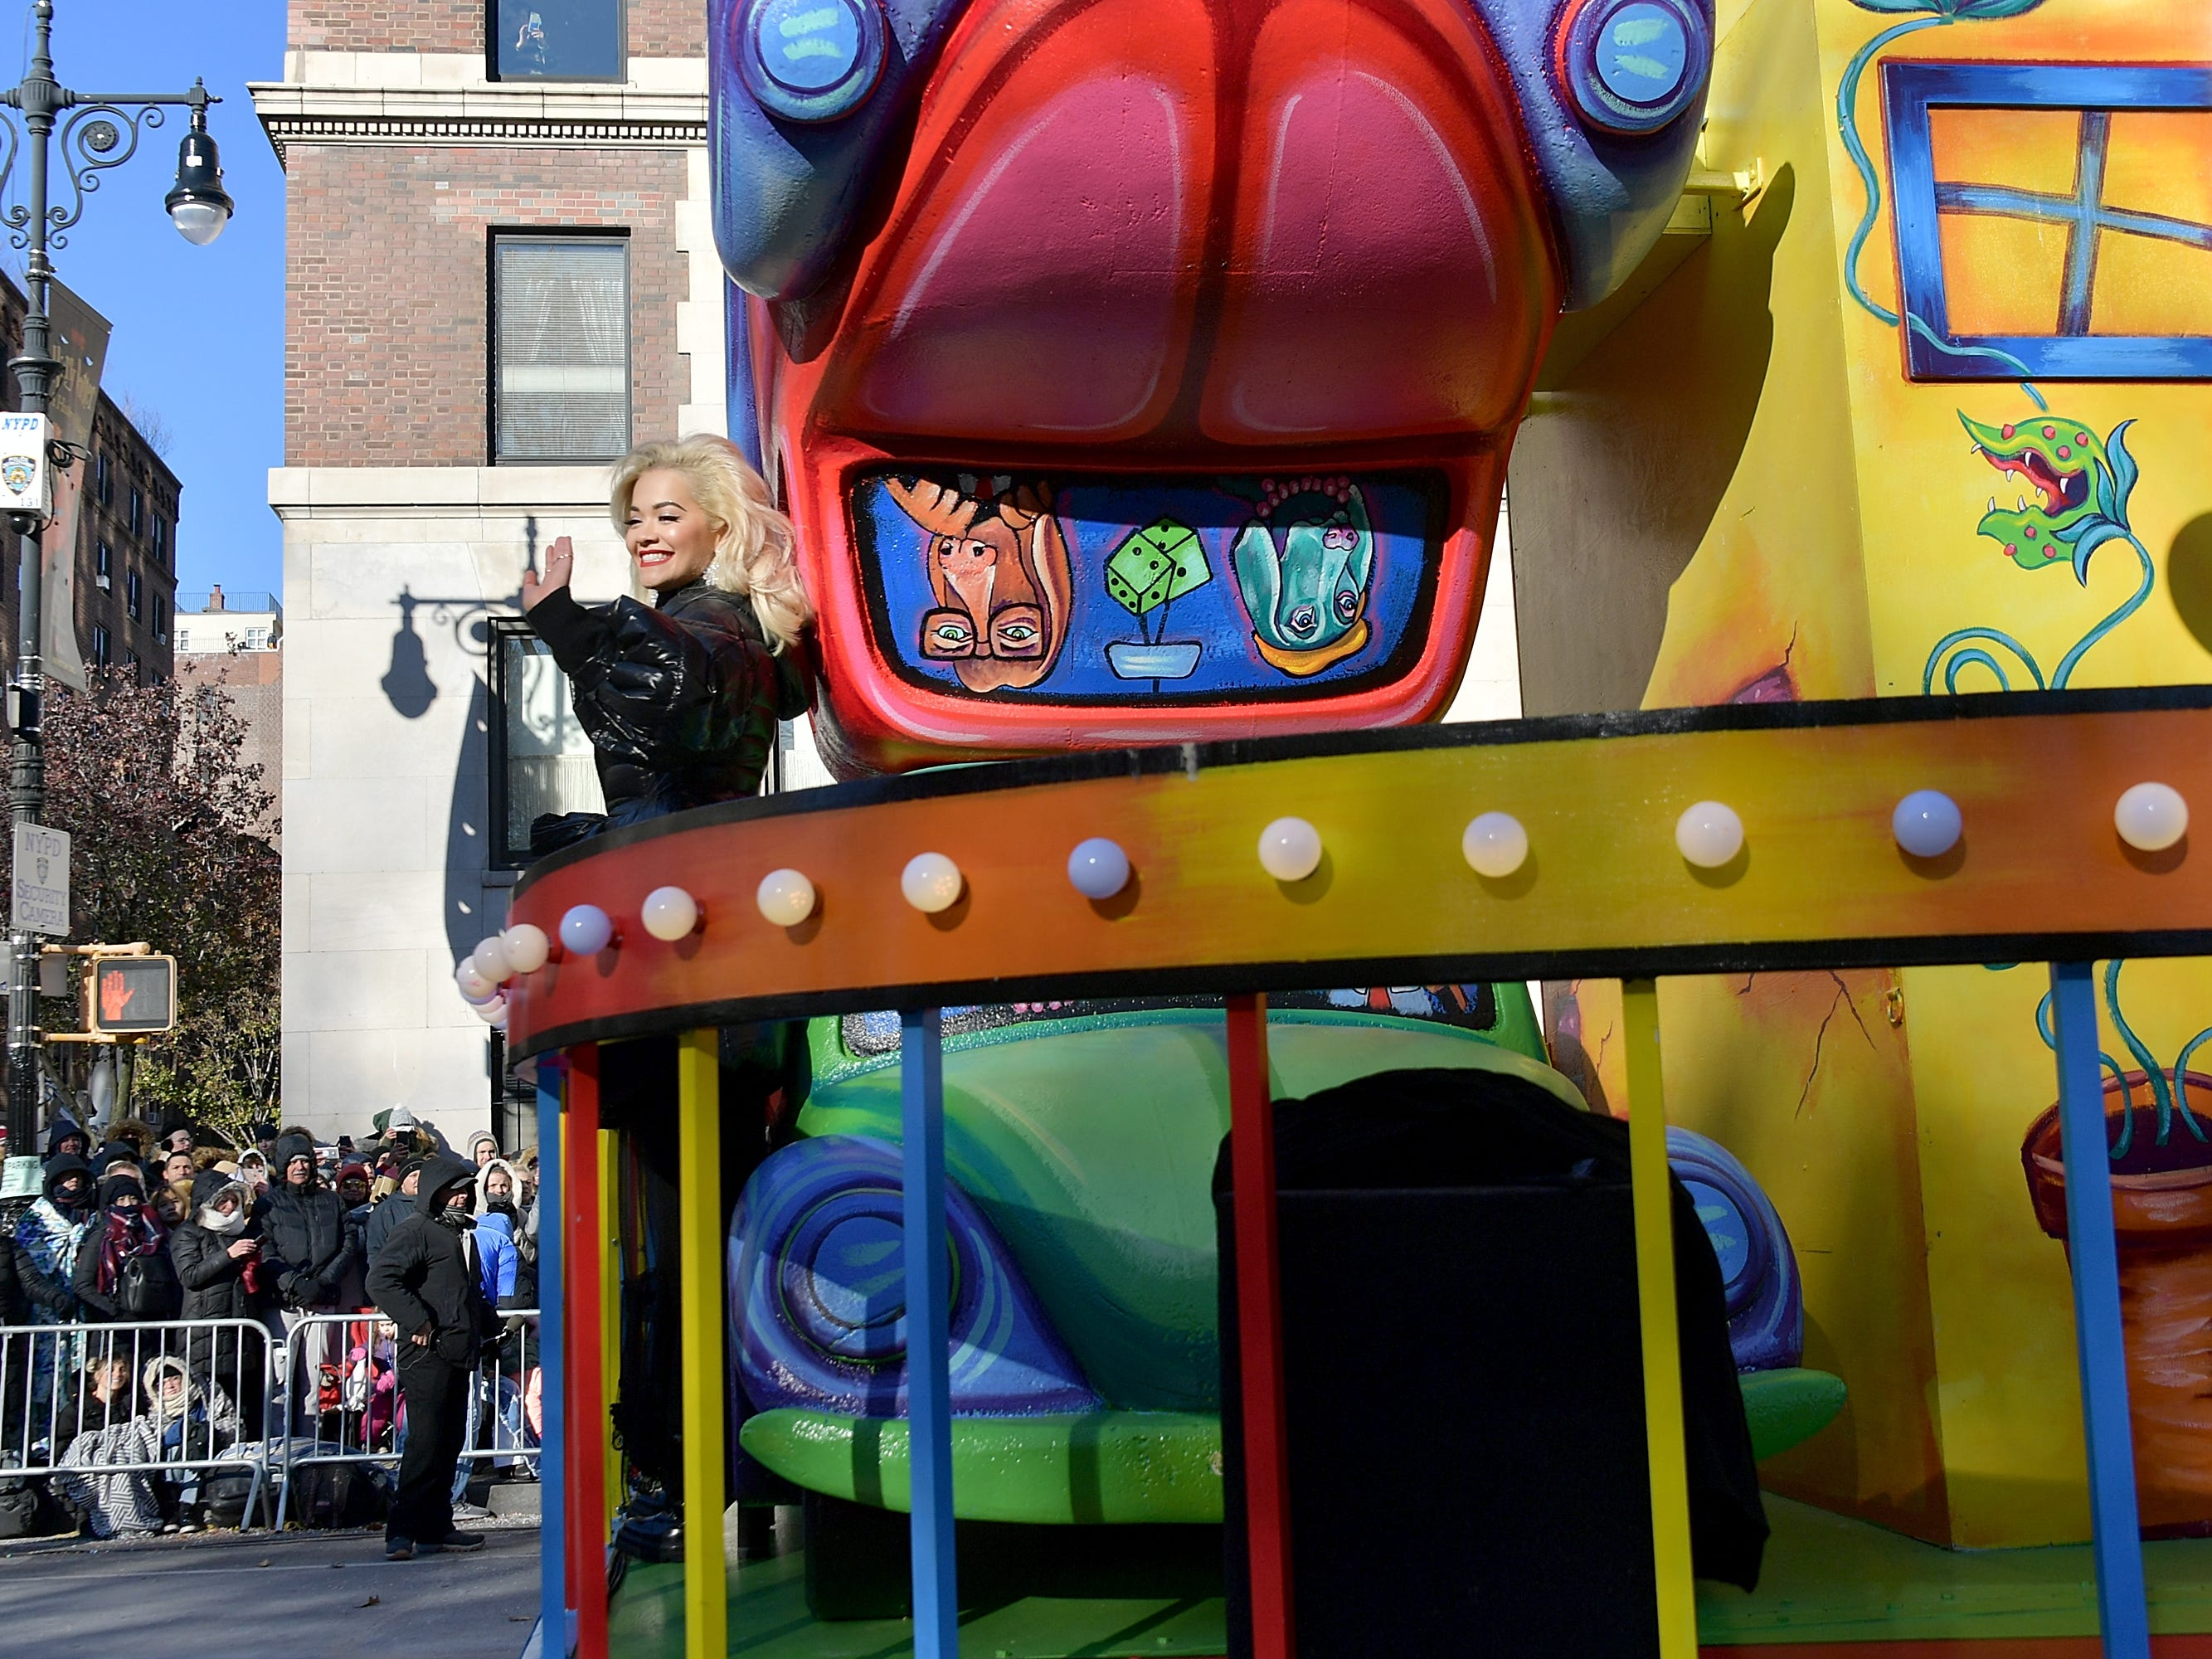 Singer Rita Ora attends the 2018 Macy's Thanksgiving Day Parade on Nov. 22, 2018, in New York.